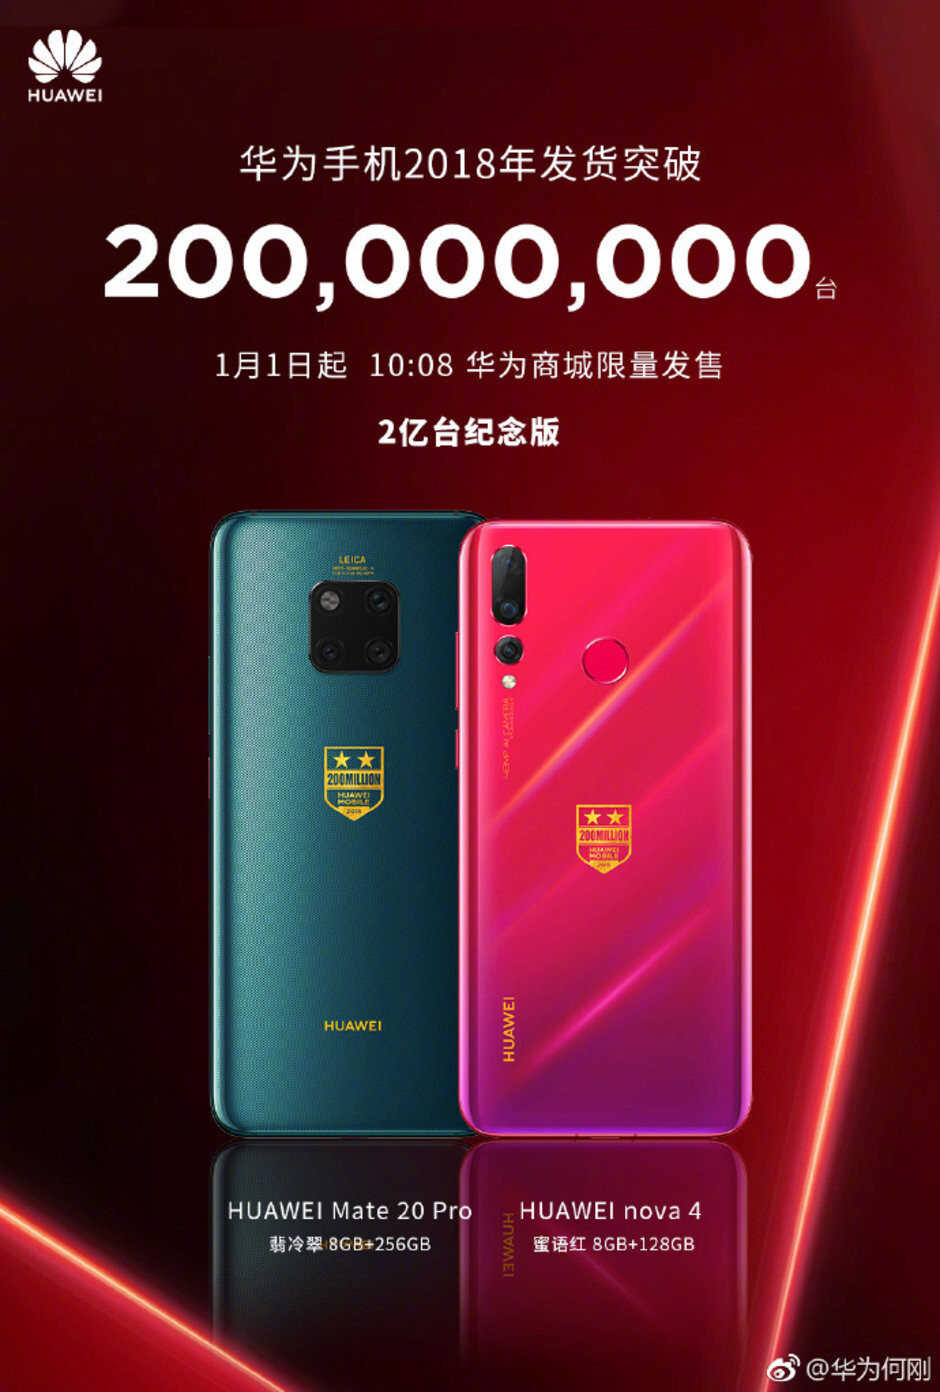 Huawei commemorates the 200 million phones it shipped this year with special editions of the Mate 20 Pro and Nova 4 - Huawei to release Mate 20 Pro and Nova 4 special editions to commemorate 200 million phones shipped